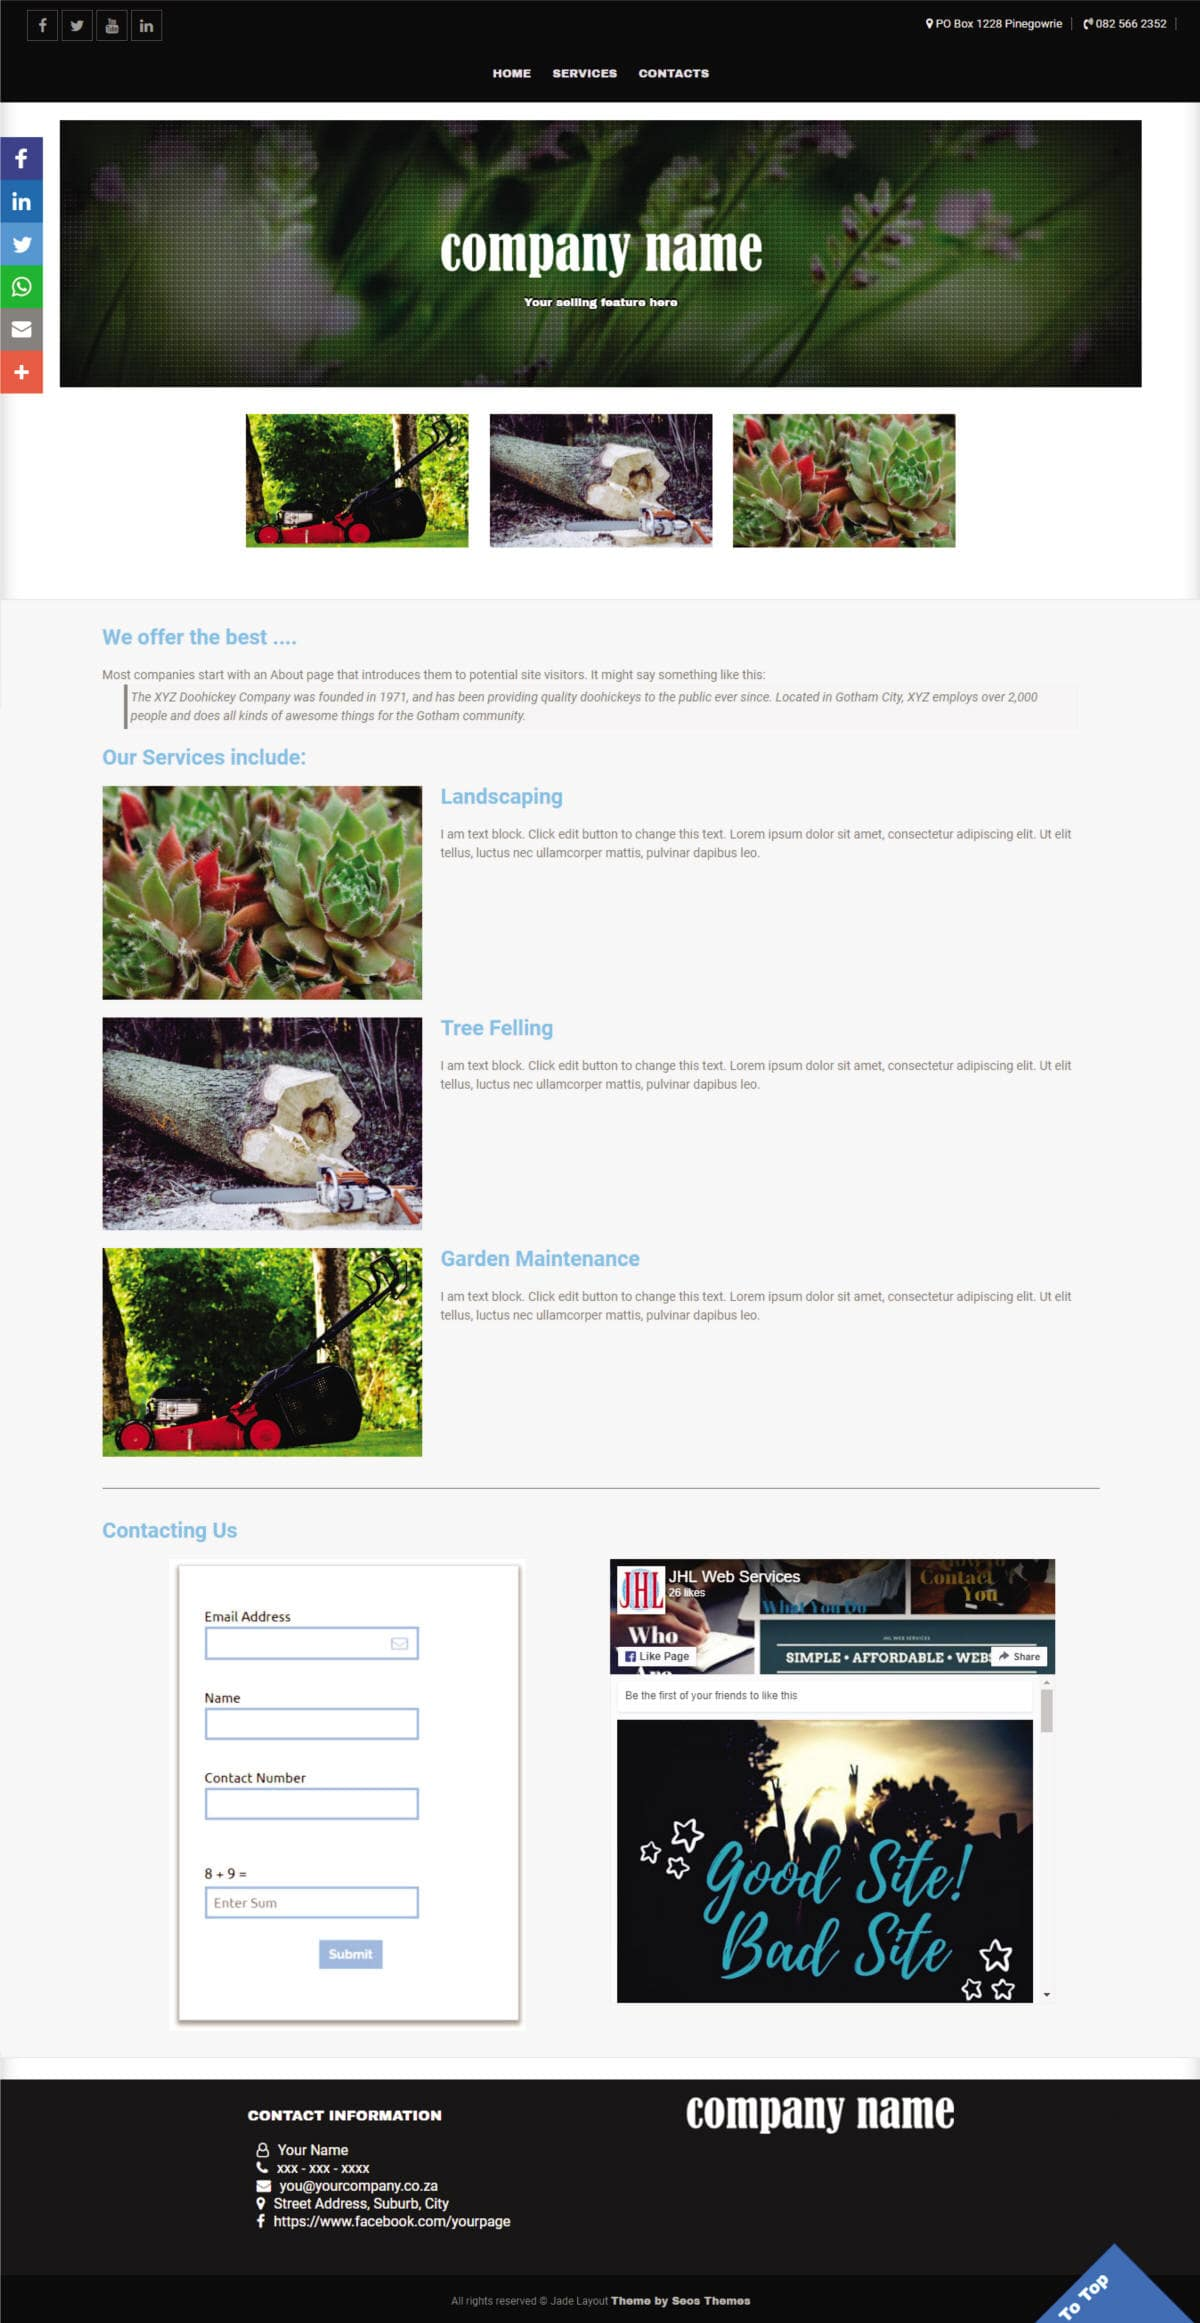 Jade Website Layout - JHL Web Services